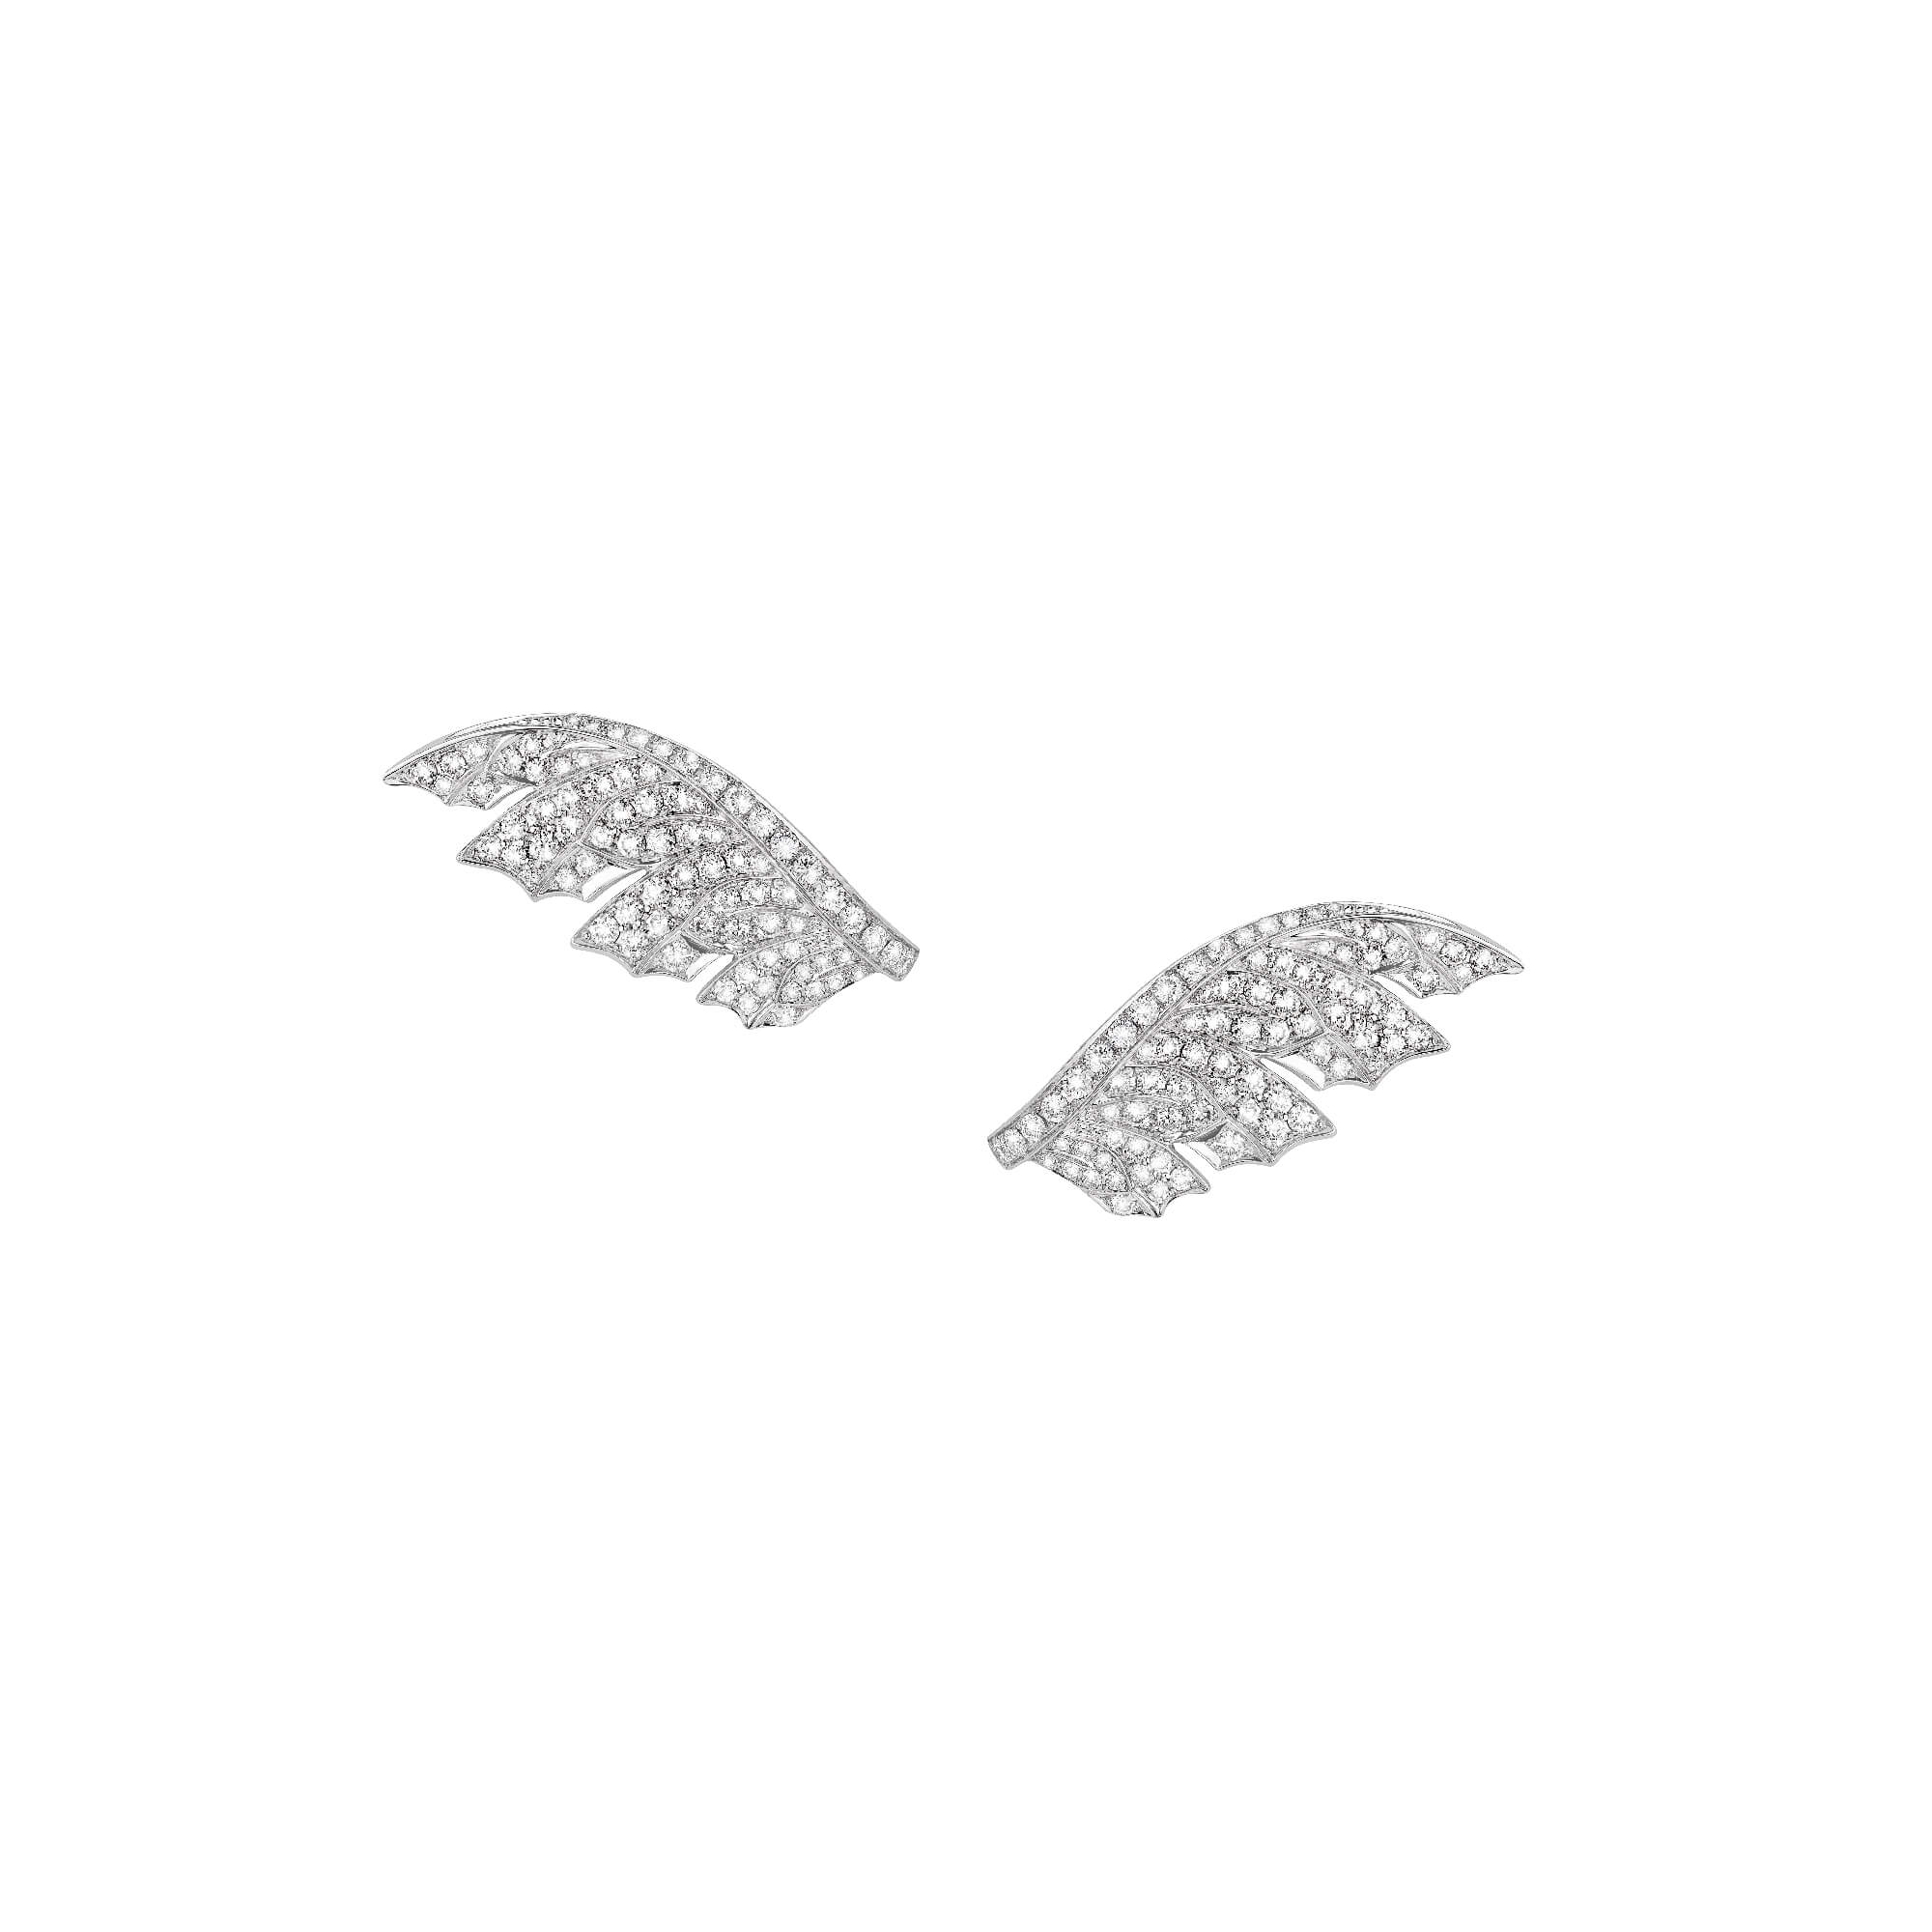 White Gold Pavé Feather Earrings With White Diamonds | Magnipheasant